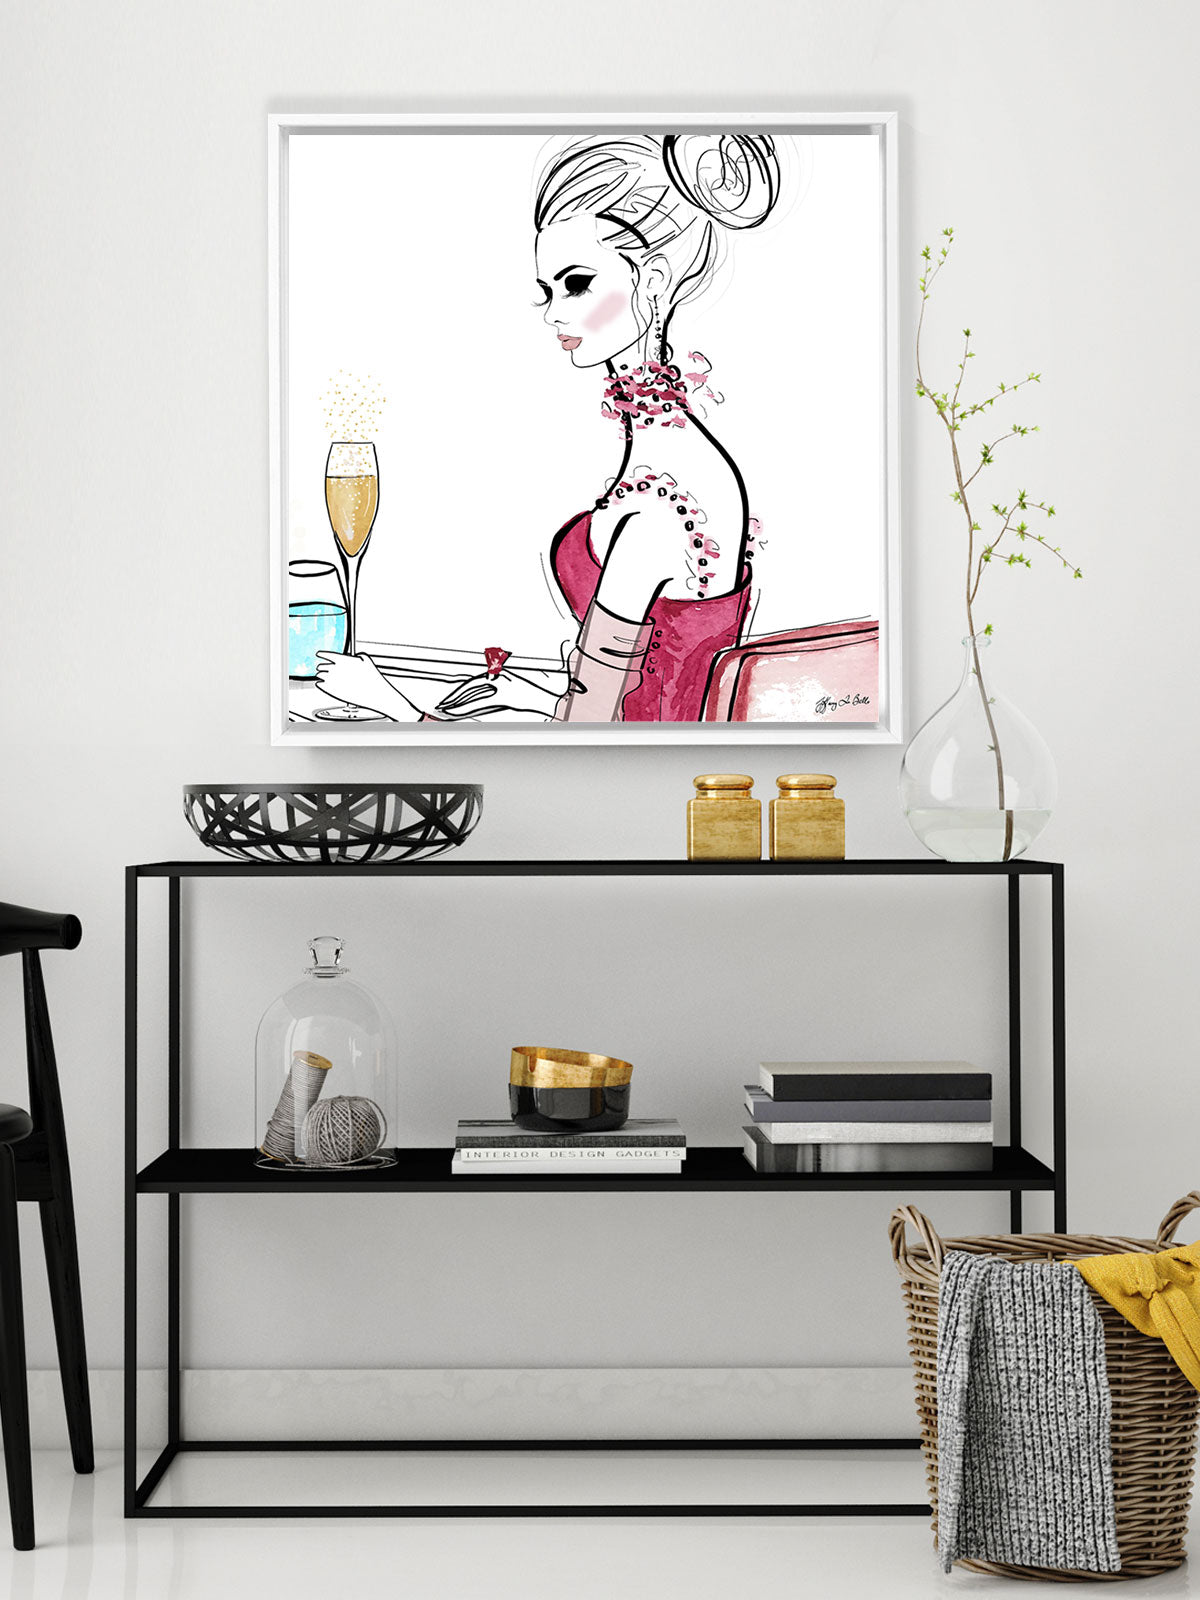 A Champagne Moment - Illustration - Canvas Gallery Print - Unframed or Framed